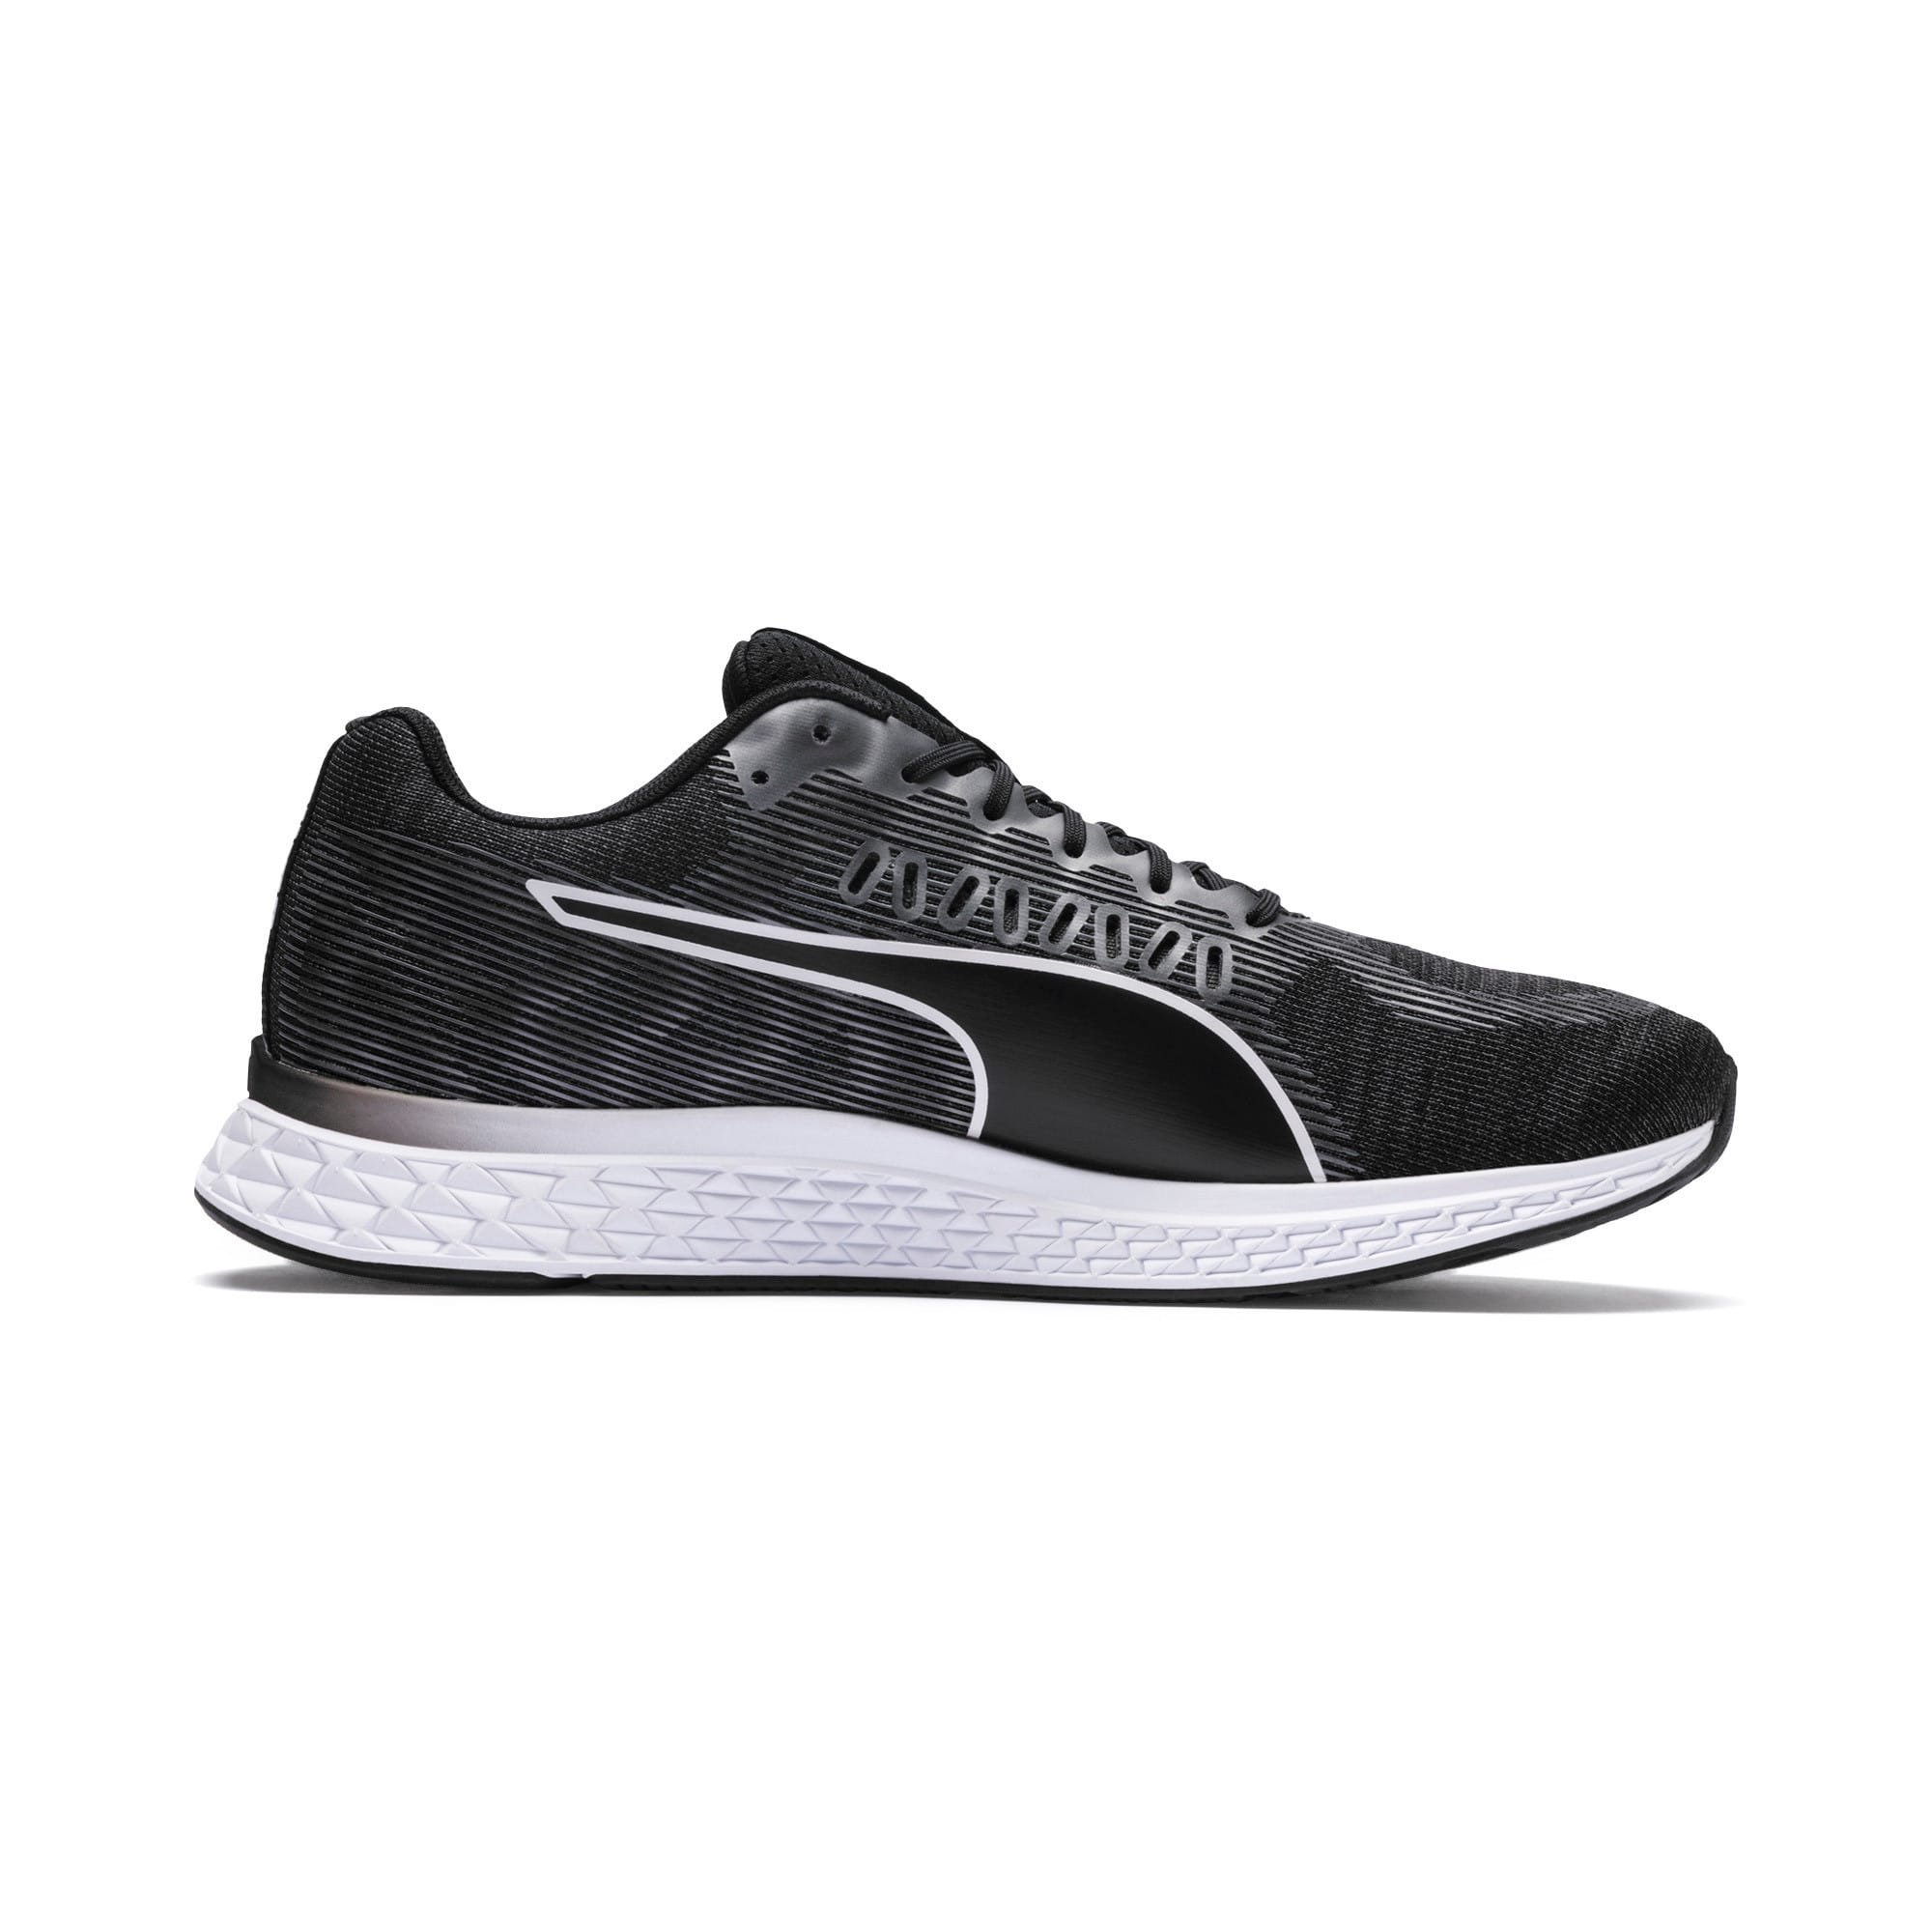 Imagen en miniatura 5 de Zapatillas de running SPEED SUTAMINA, Puma Black-Puma White, mediana